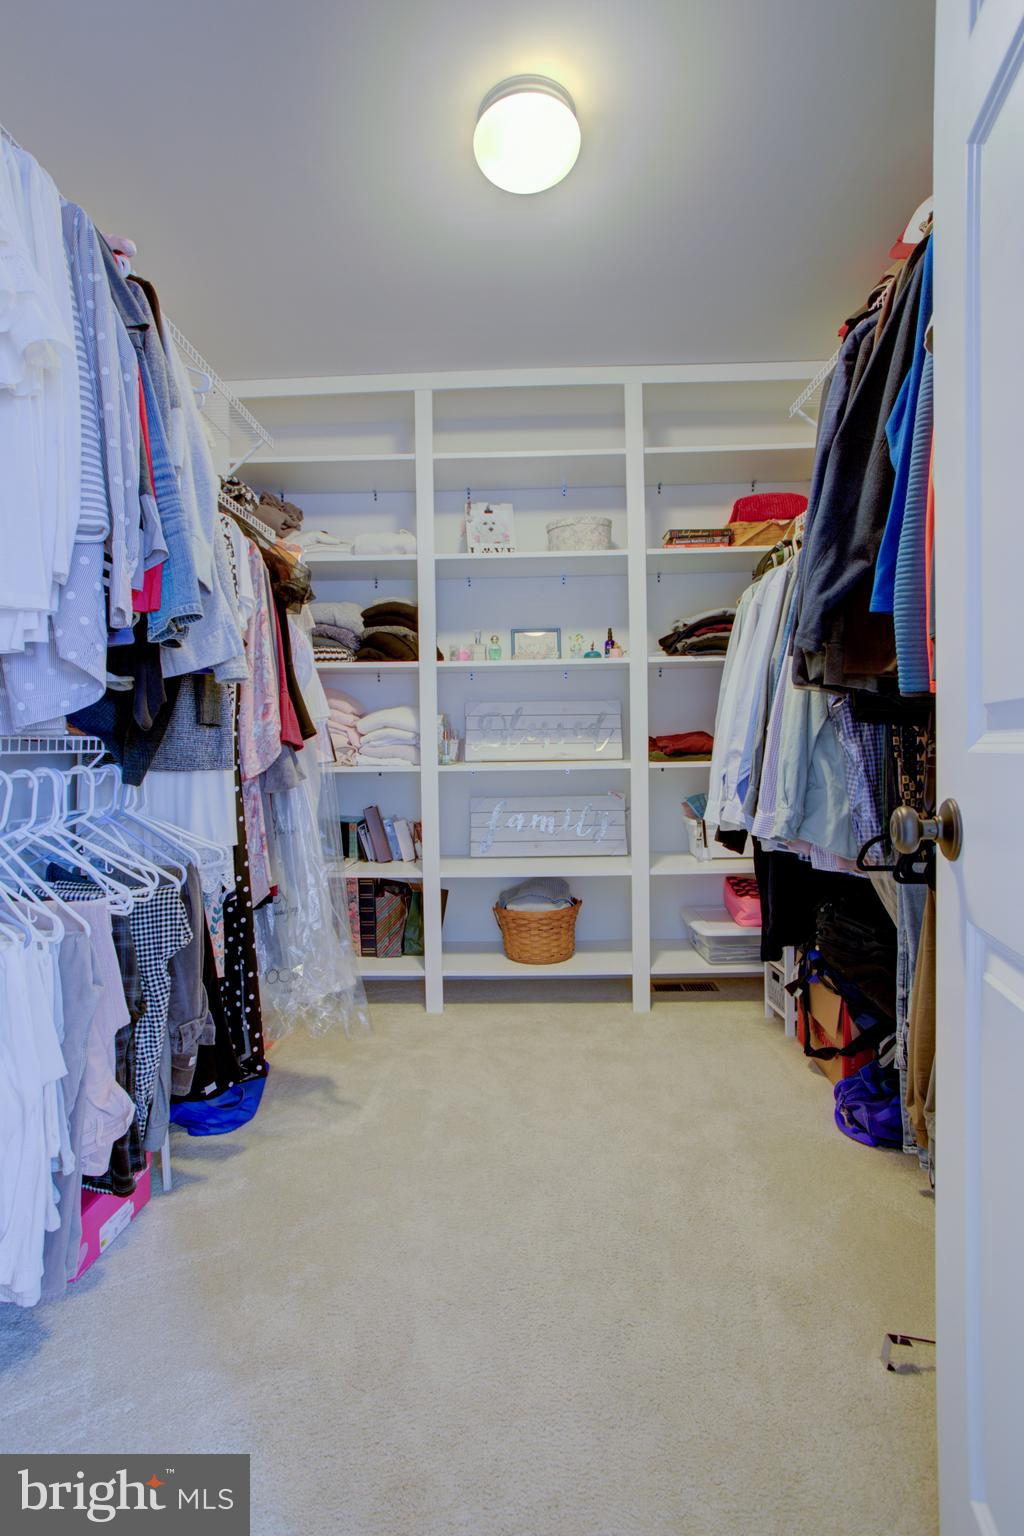 MBR Large walk in closet with shelving unit